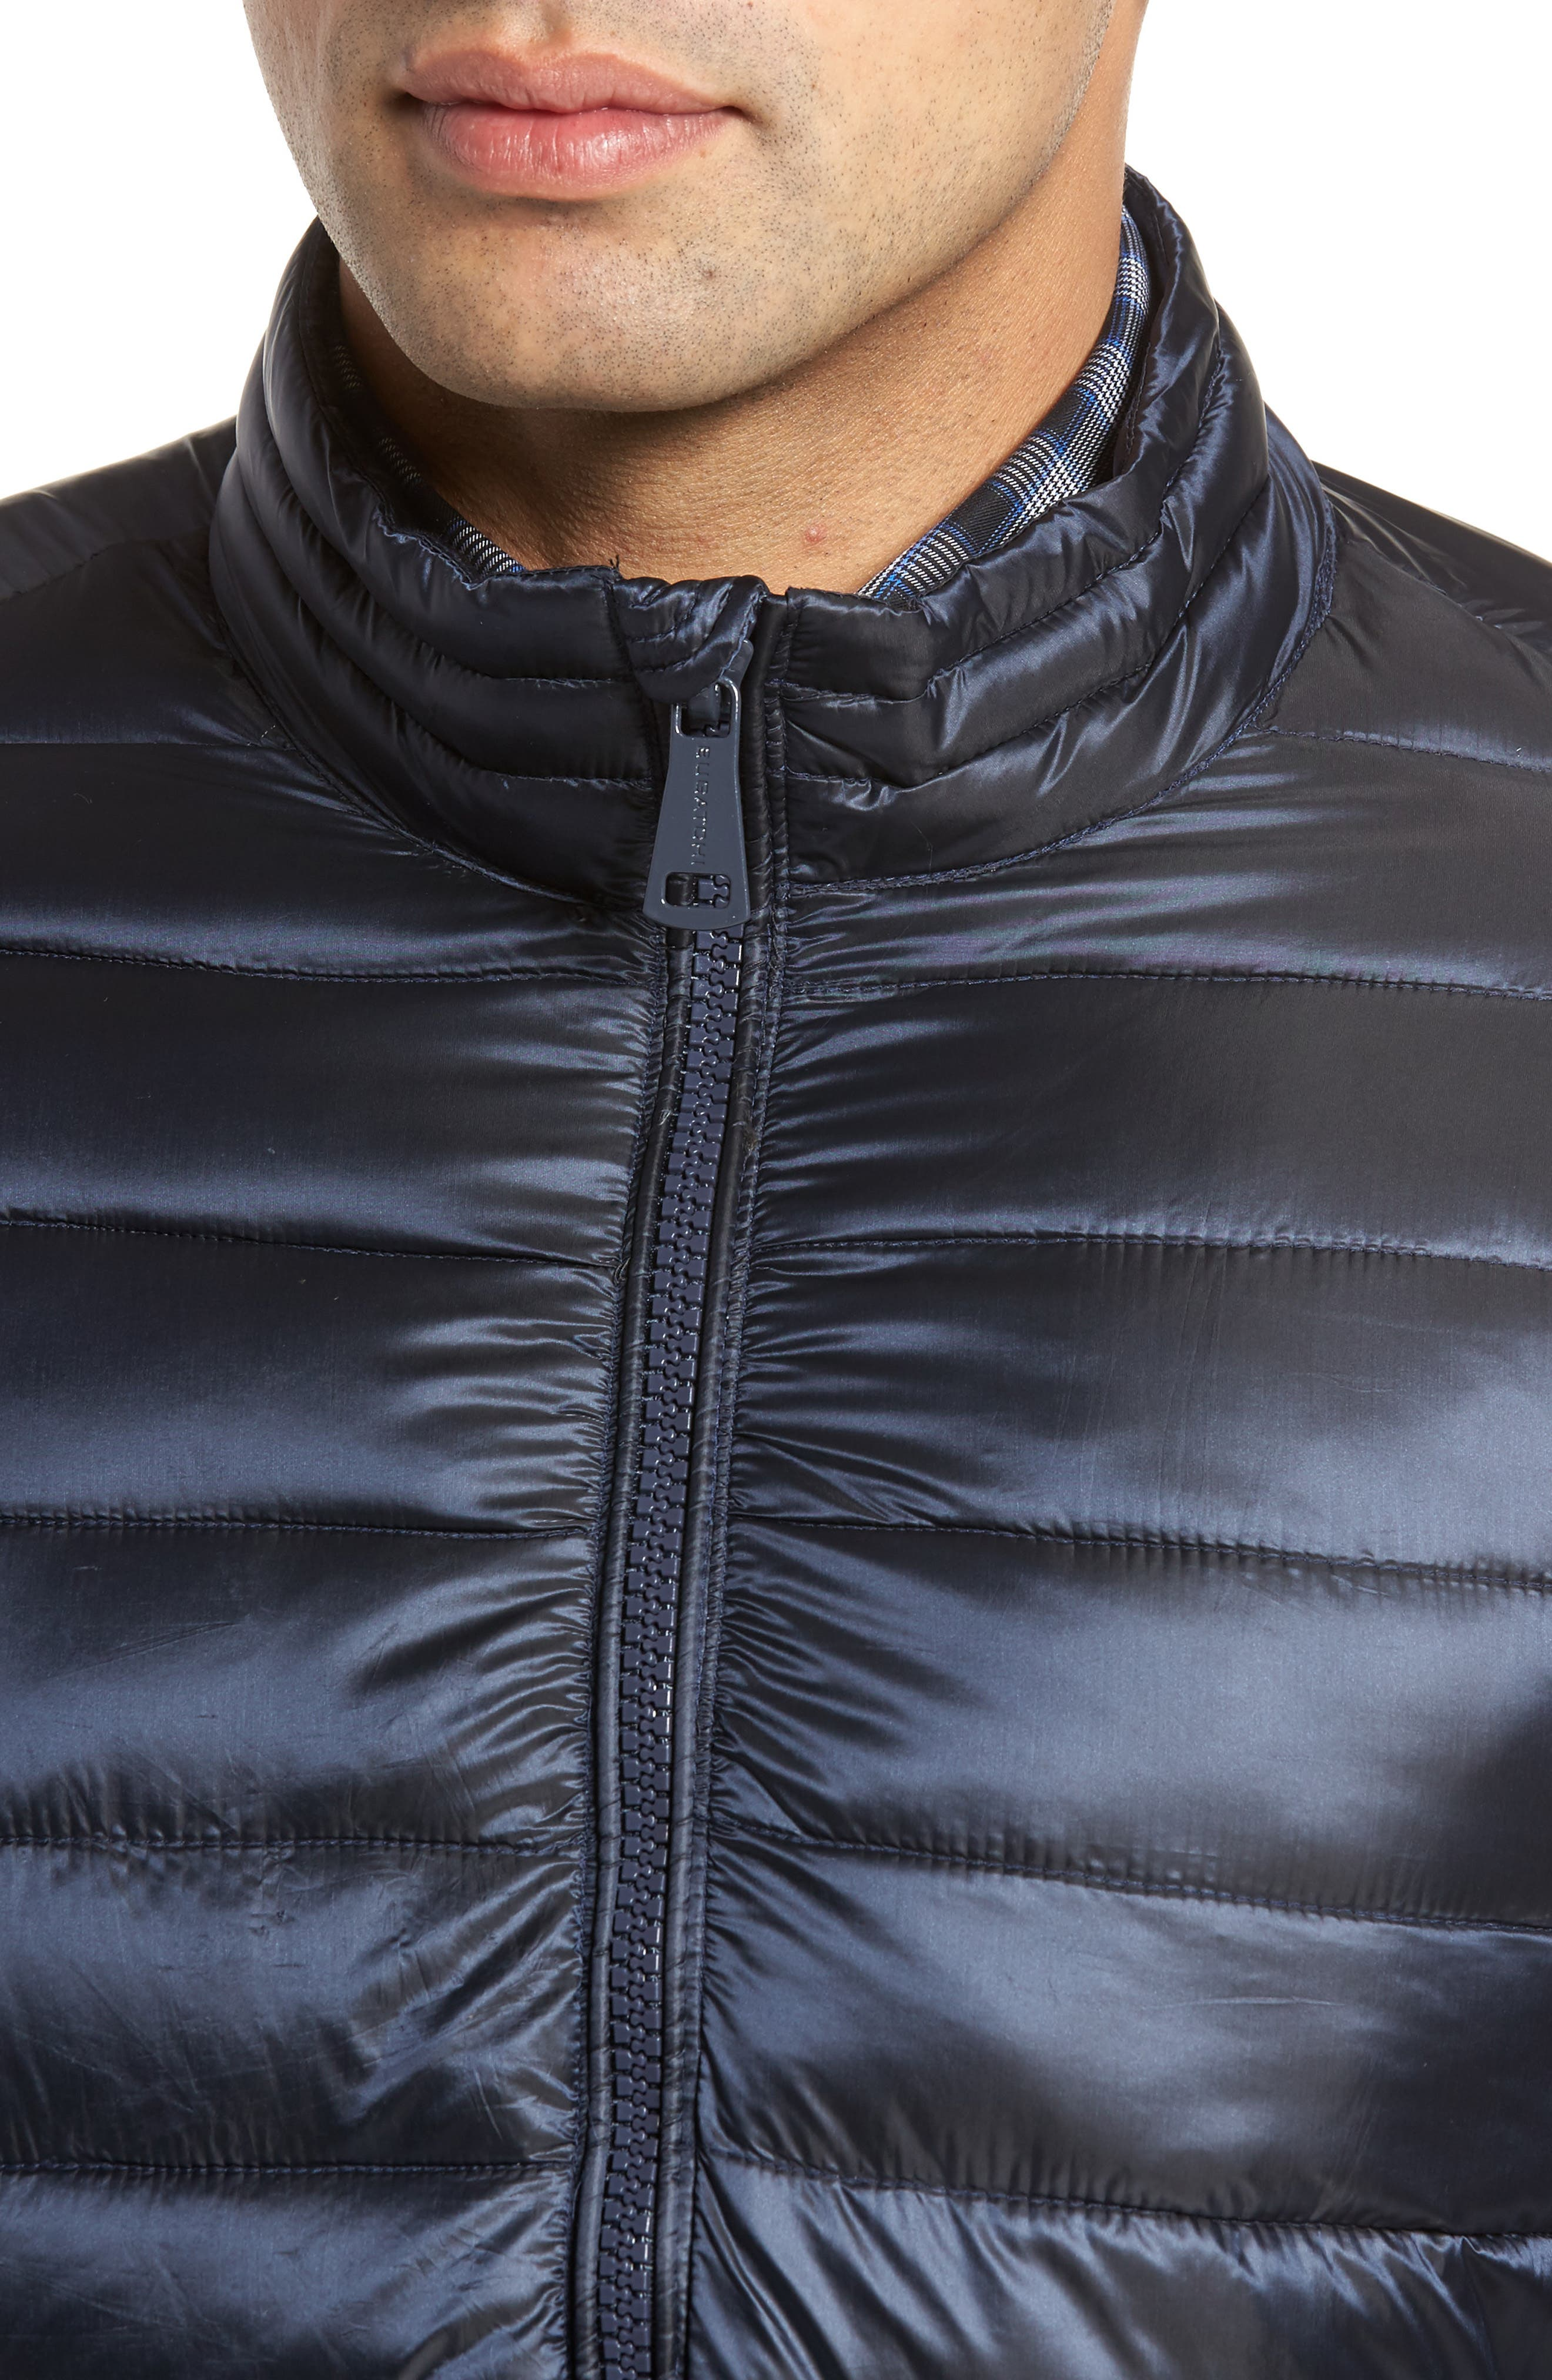 Channel Quilted Jacket,                             Alternate thumbnail 4, color,                             Navy